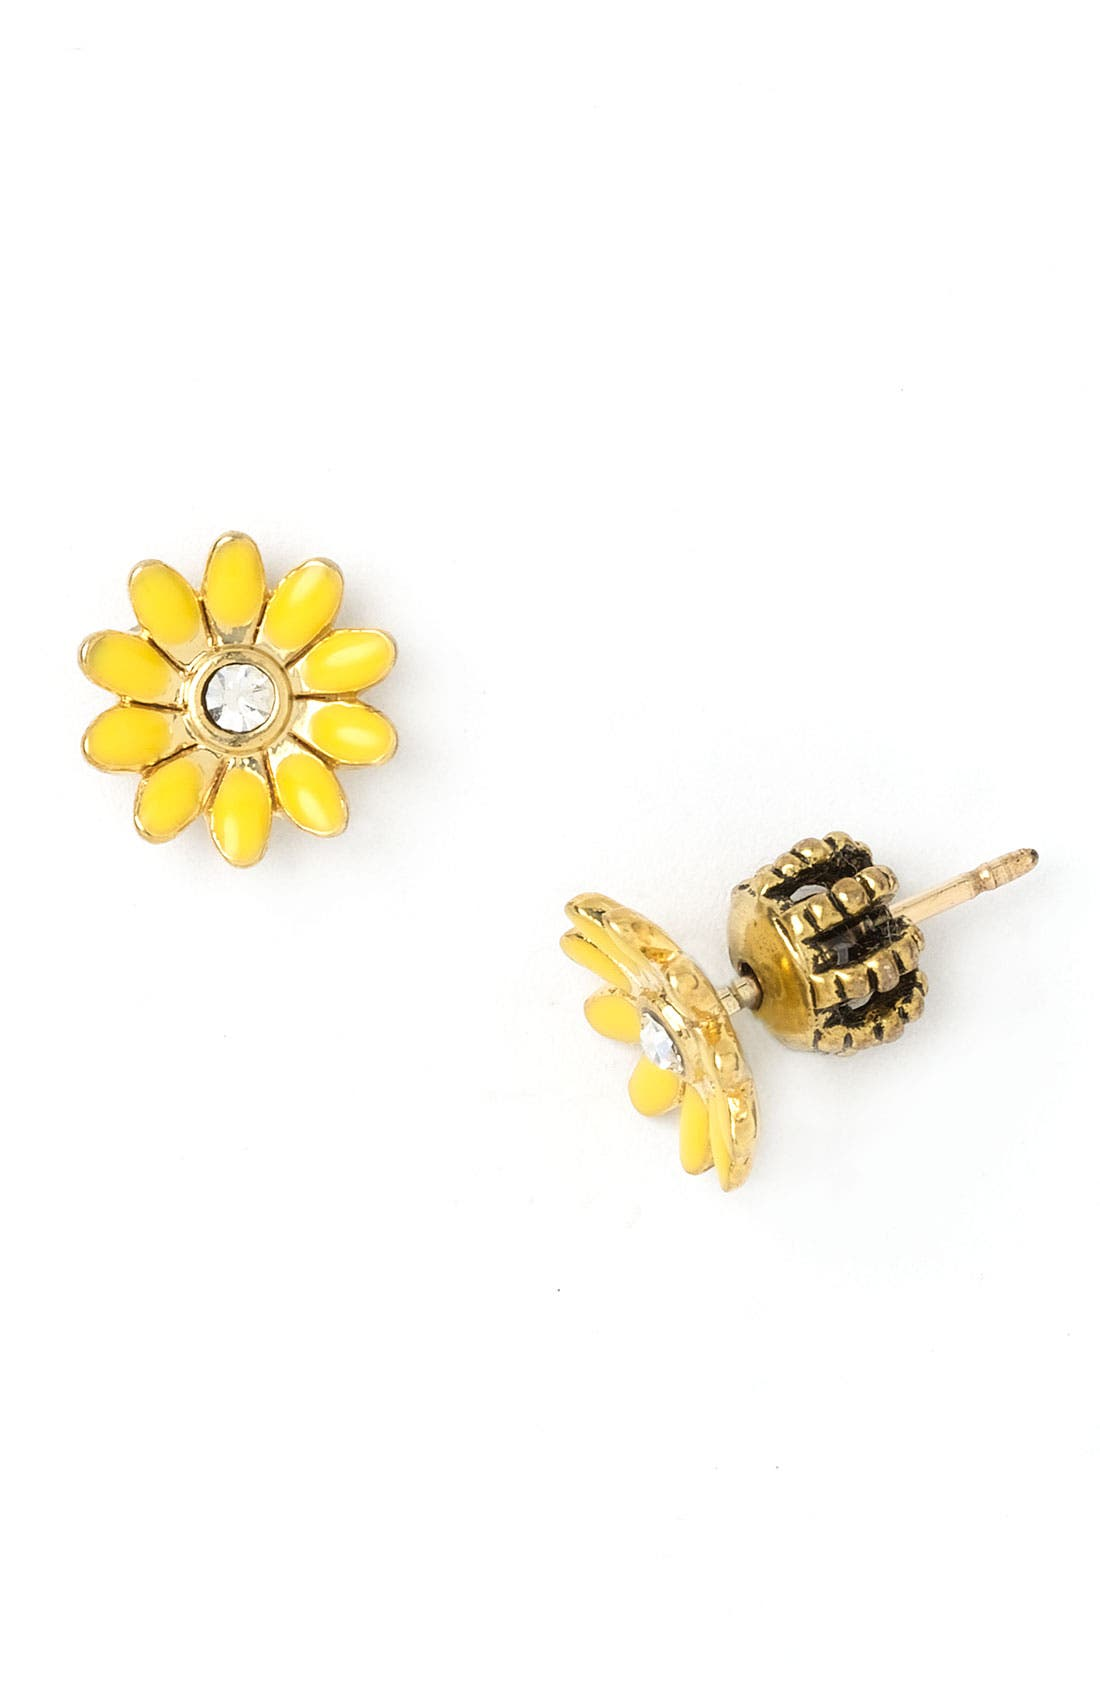 Alternate Image 1 Selected - Juicy Couture 'Daisy' Stud Earrings